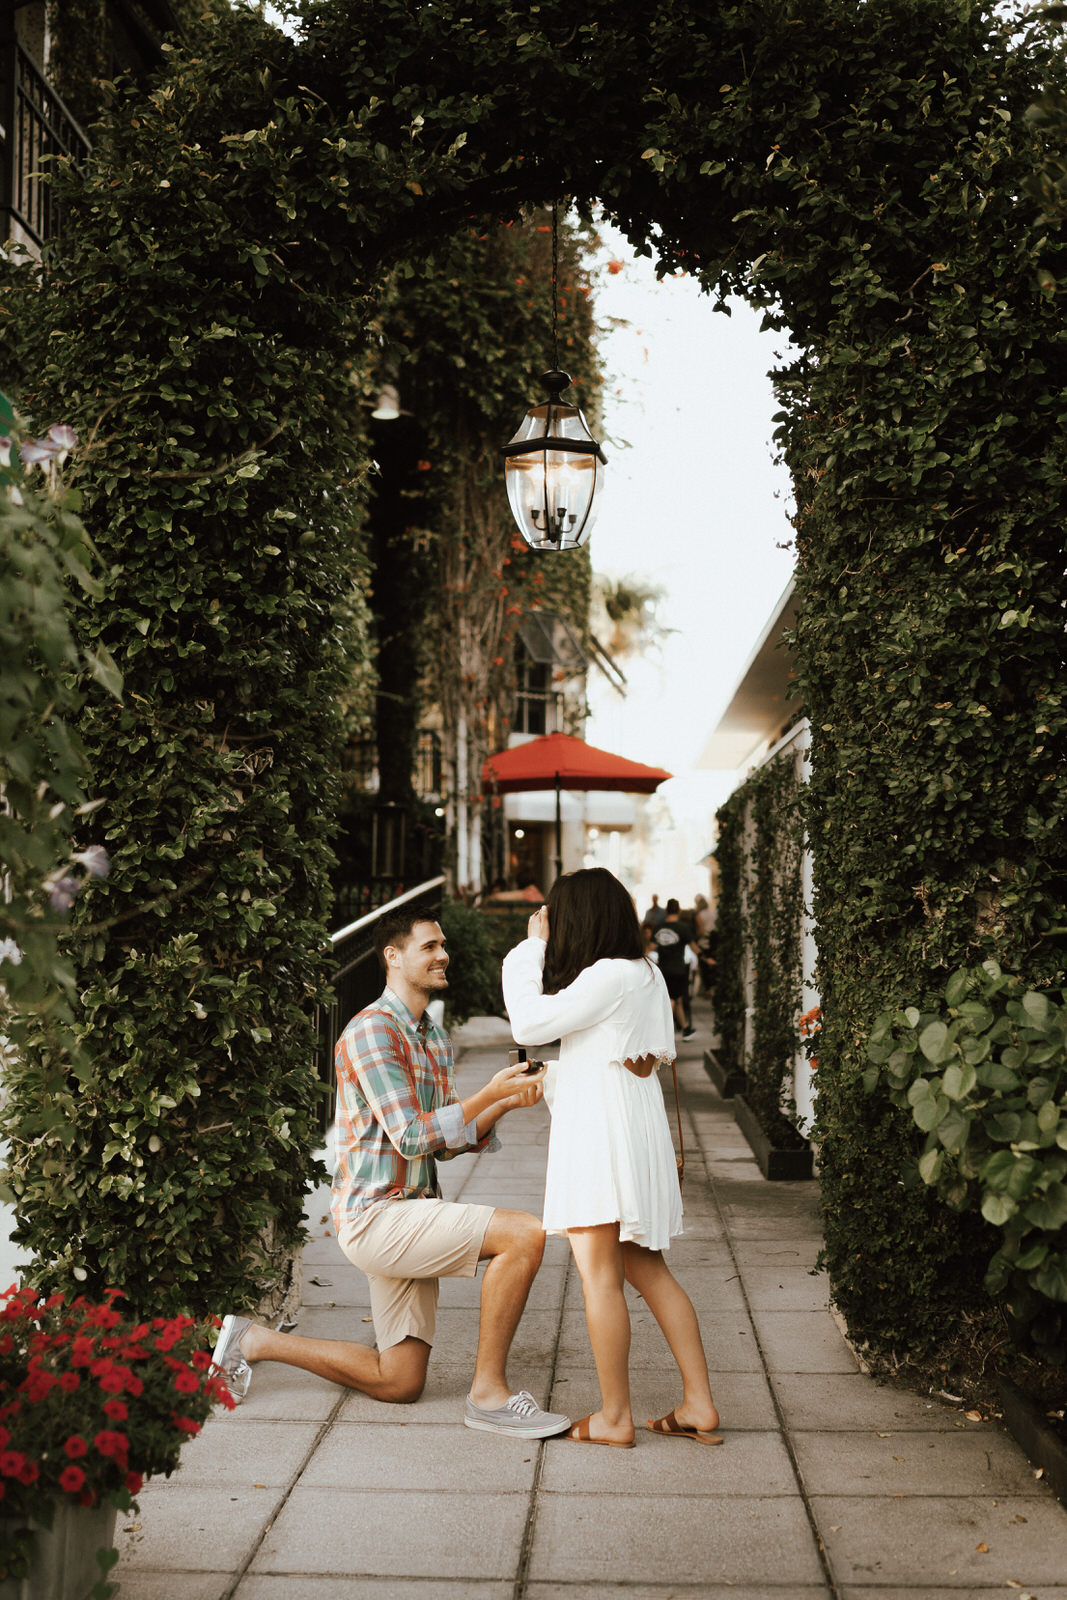 Naples 5th Ave Proposal Photos- Michelle Gonzalez Photography- Matt and Jenna-8.JPG